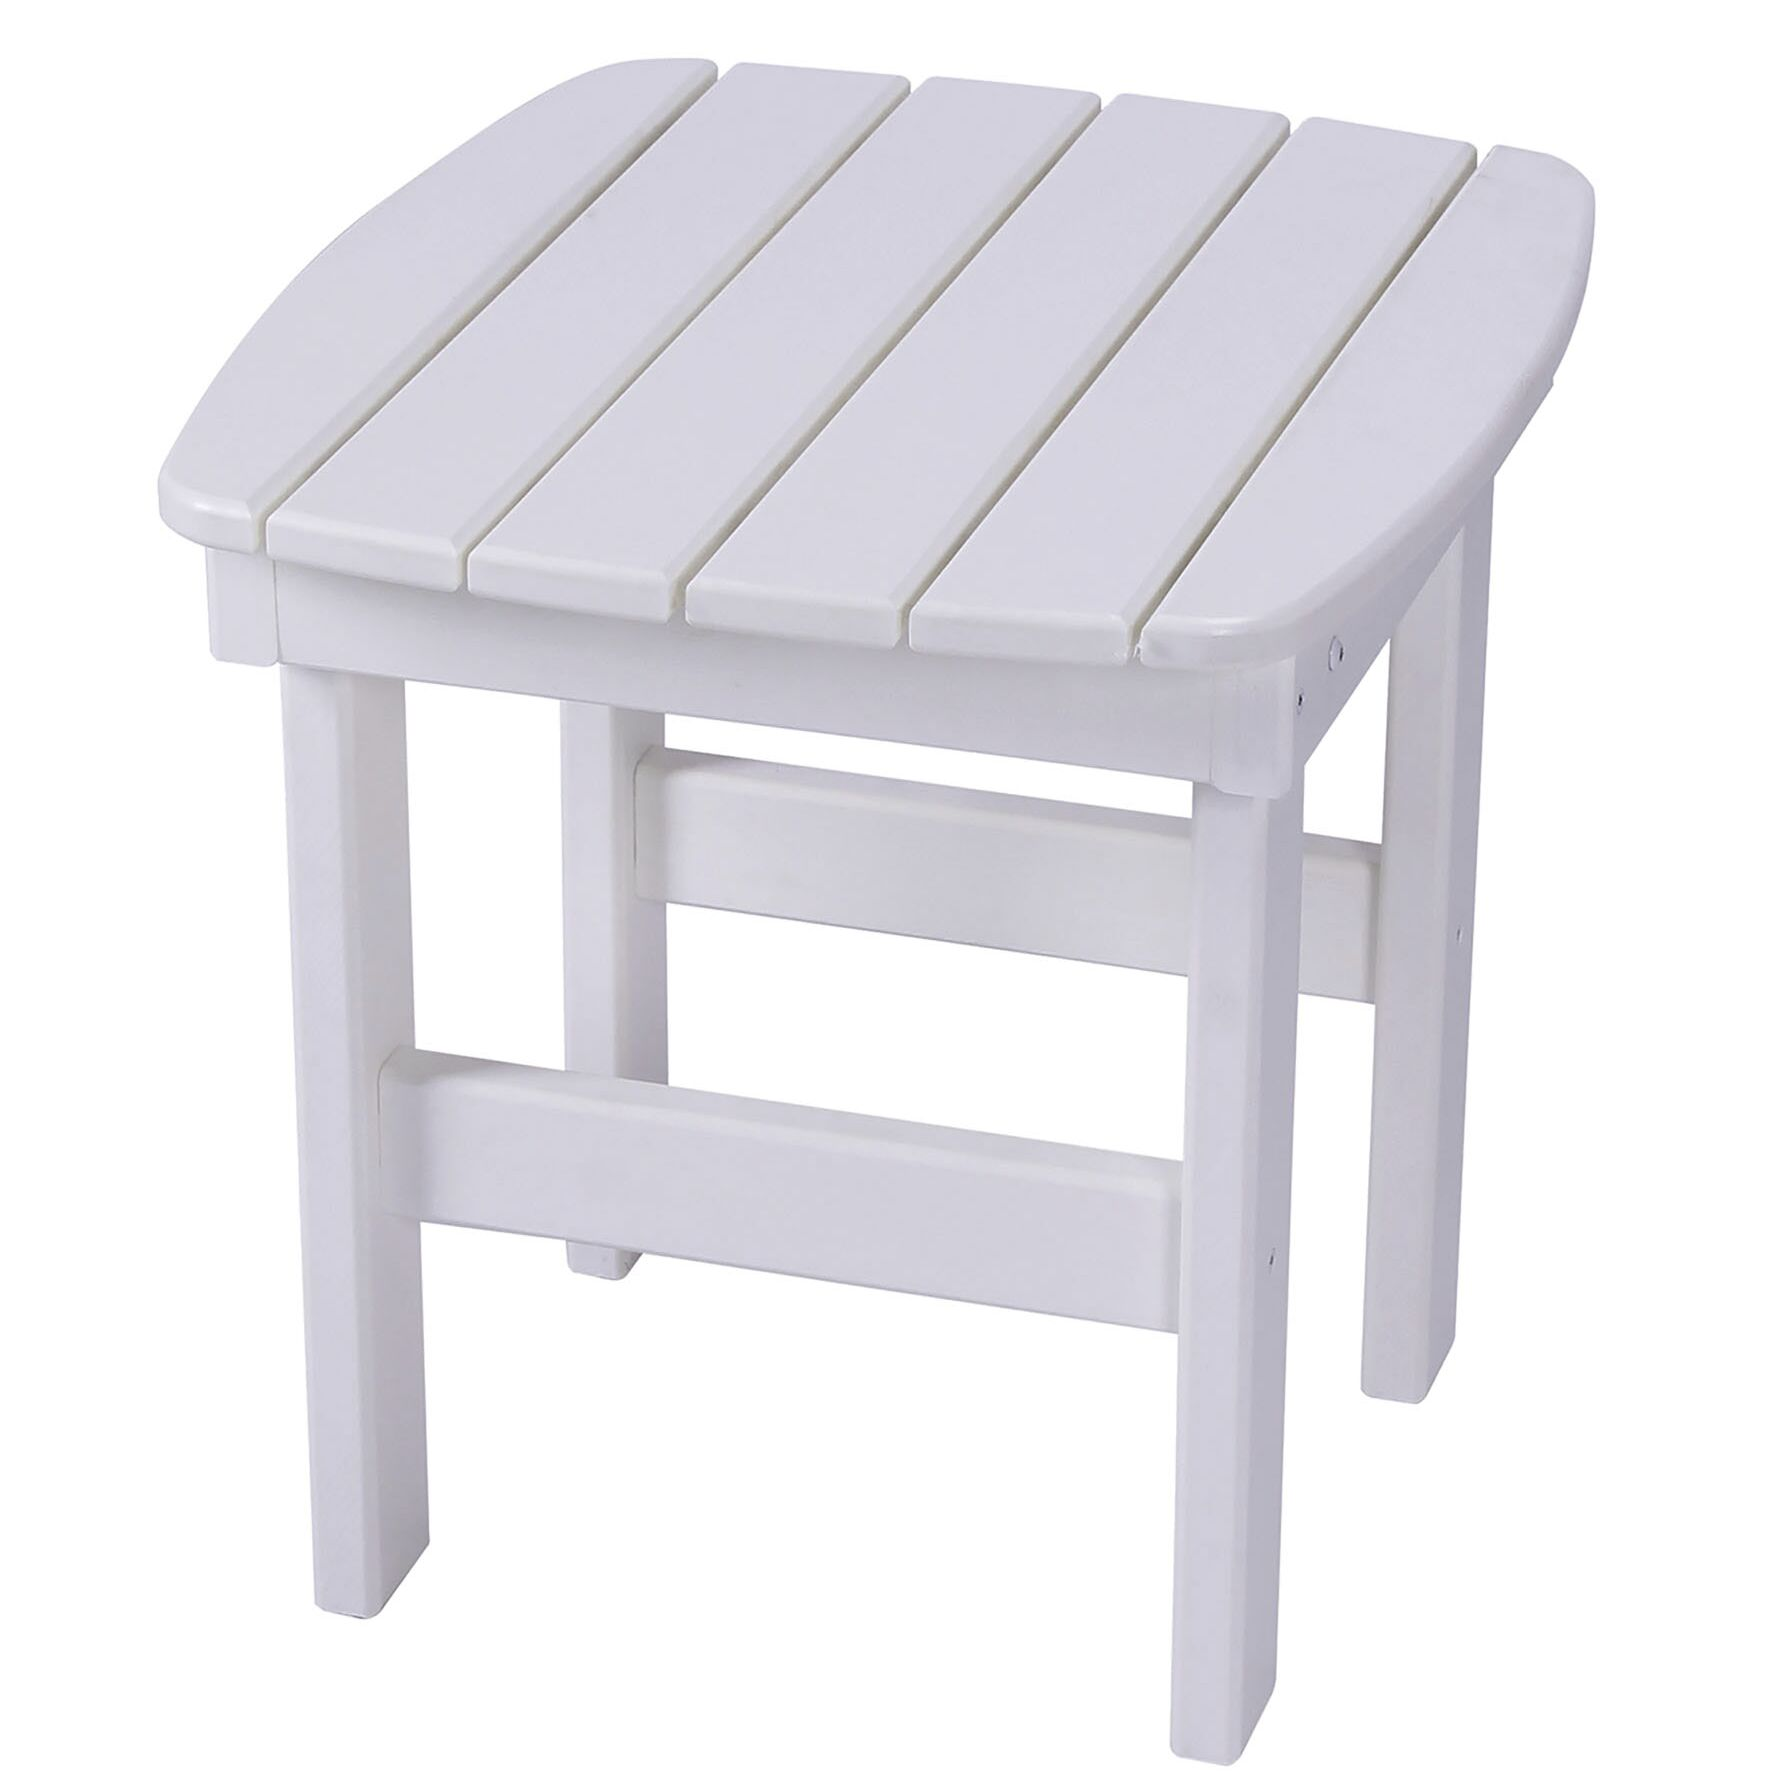 Jaune Side Table Finish: White